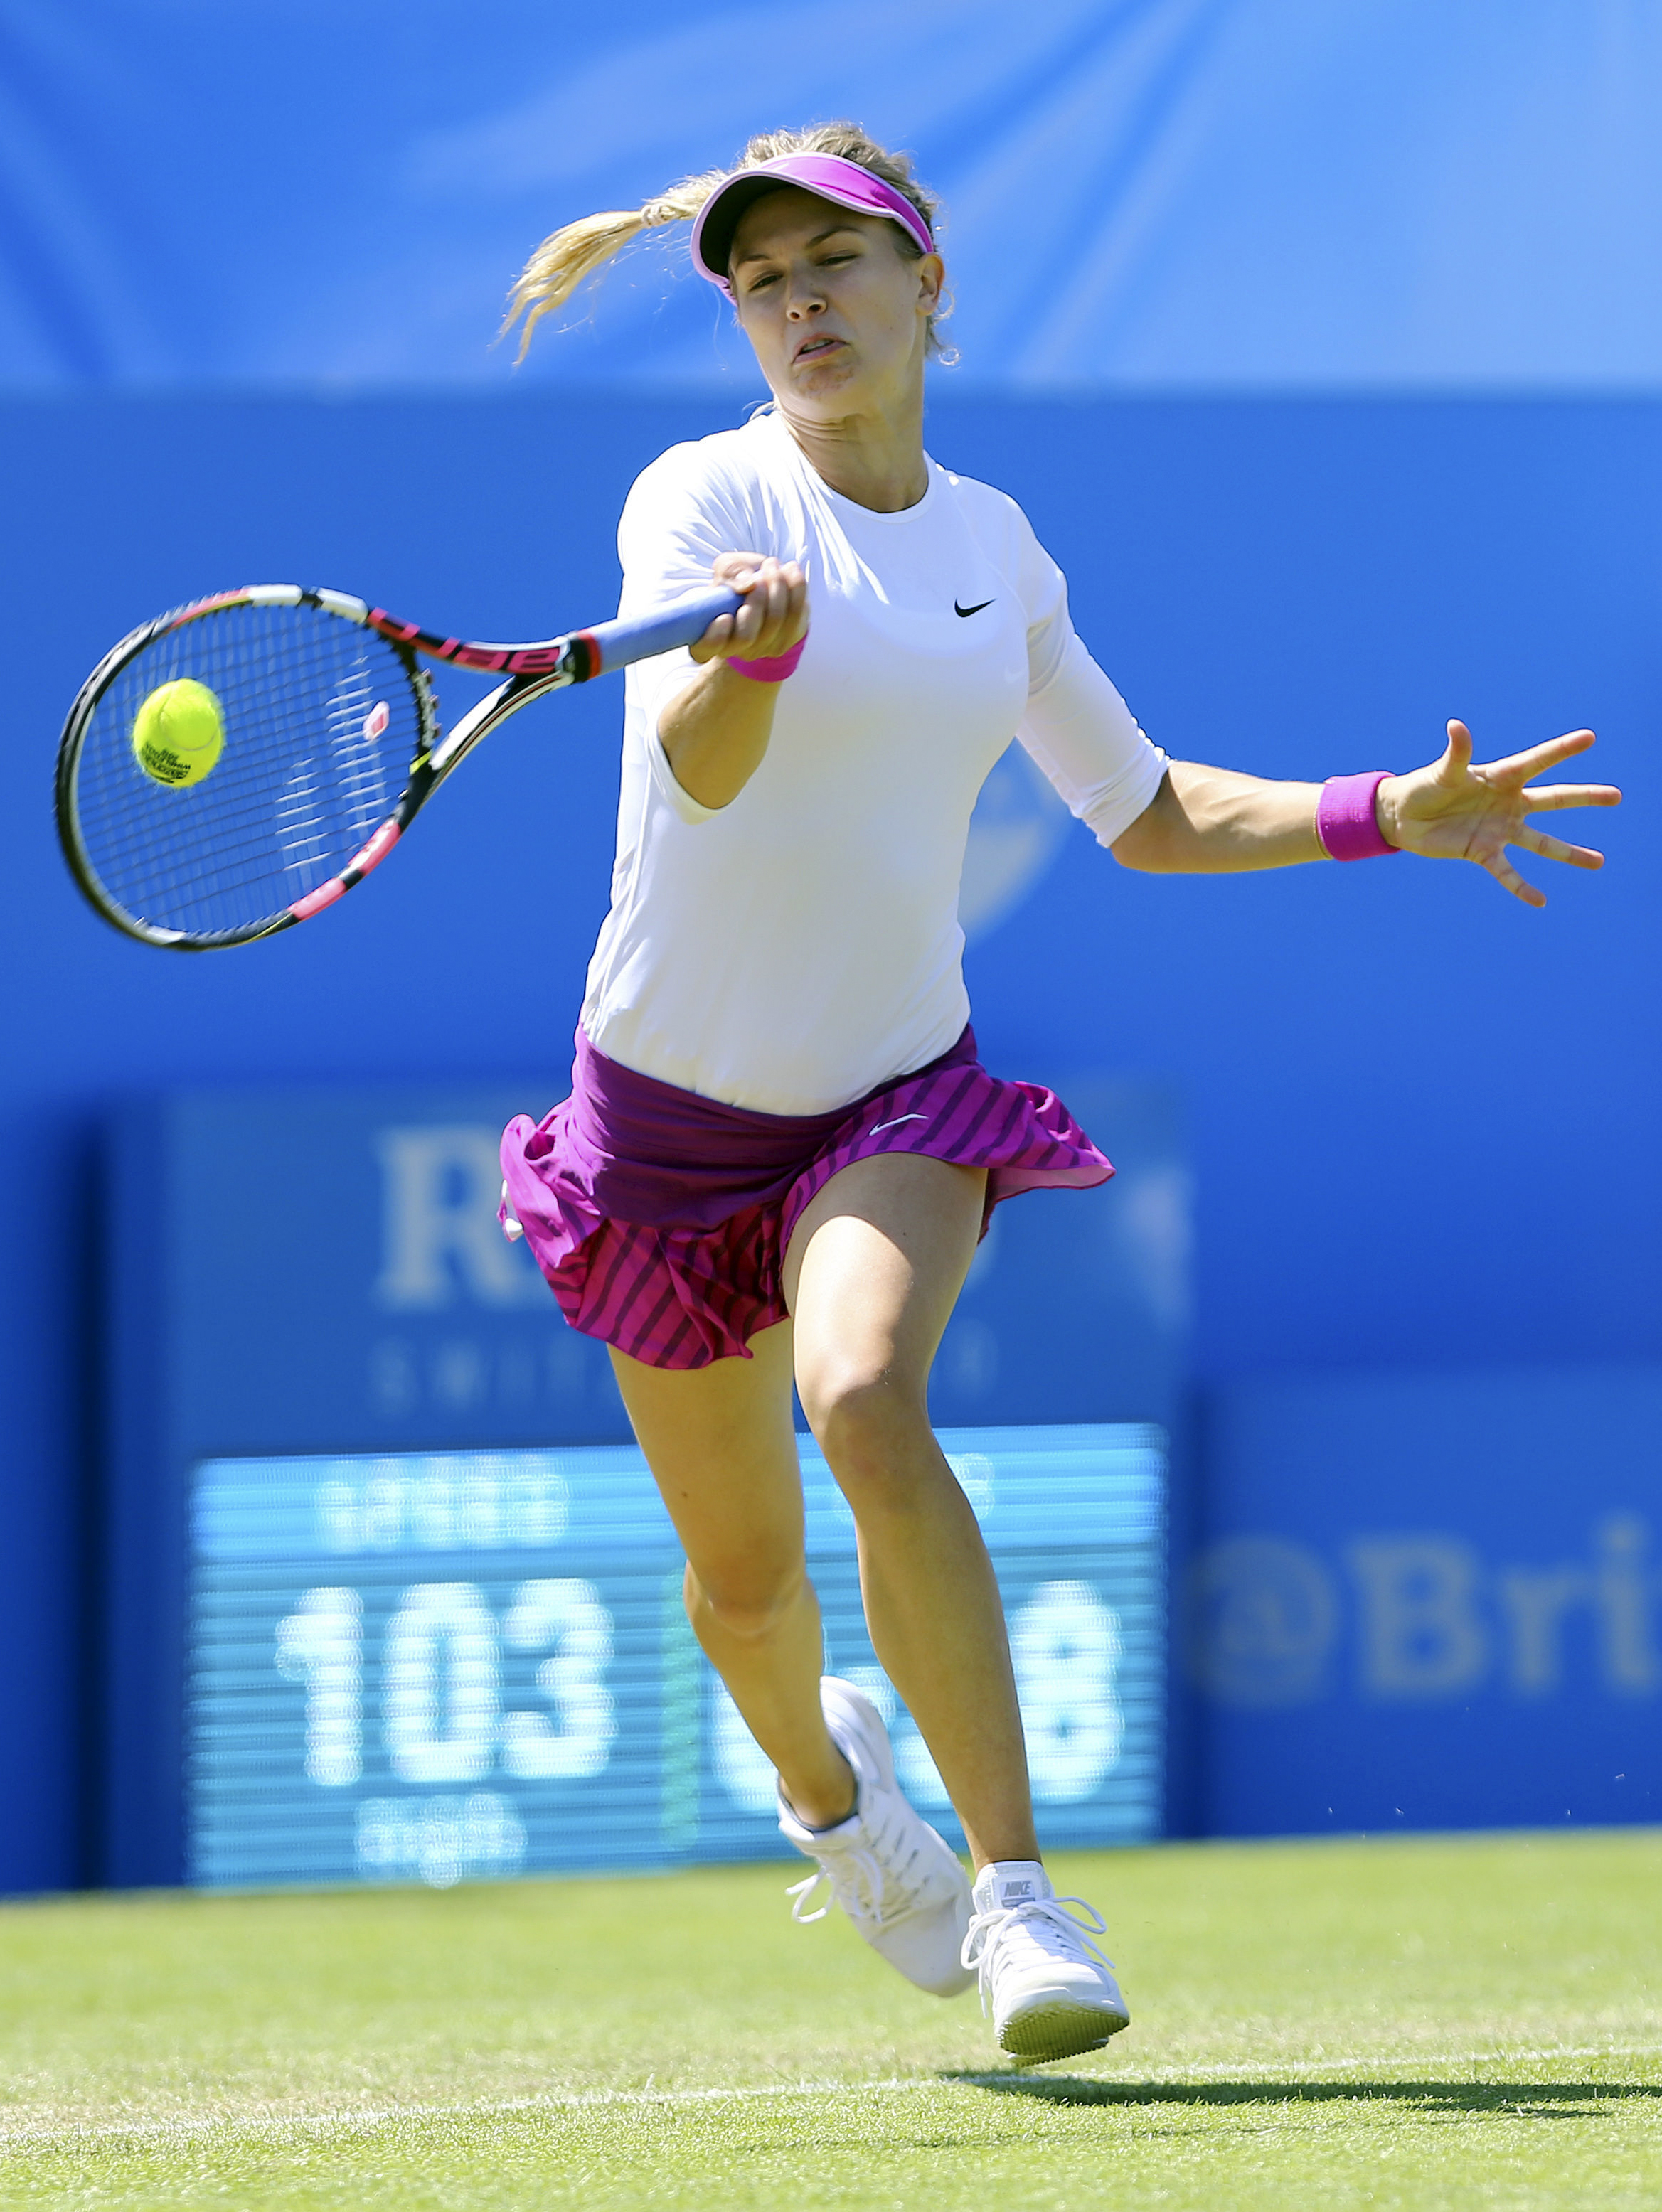 Canada's Eugenie Bouchard returns the ball to Switzerland's Belinda Bencic during day five of the women's international tennis tournament at Devonshire Park, Eastbourne, England, Wednesday June 24, 2015. (Gareth Fuller/PA via AP) UNITED KINGDOM OUT  NO SA